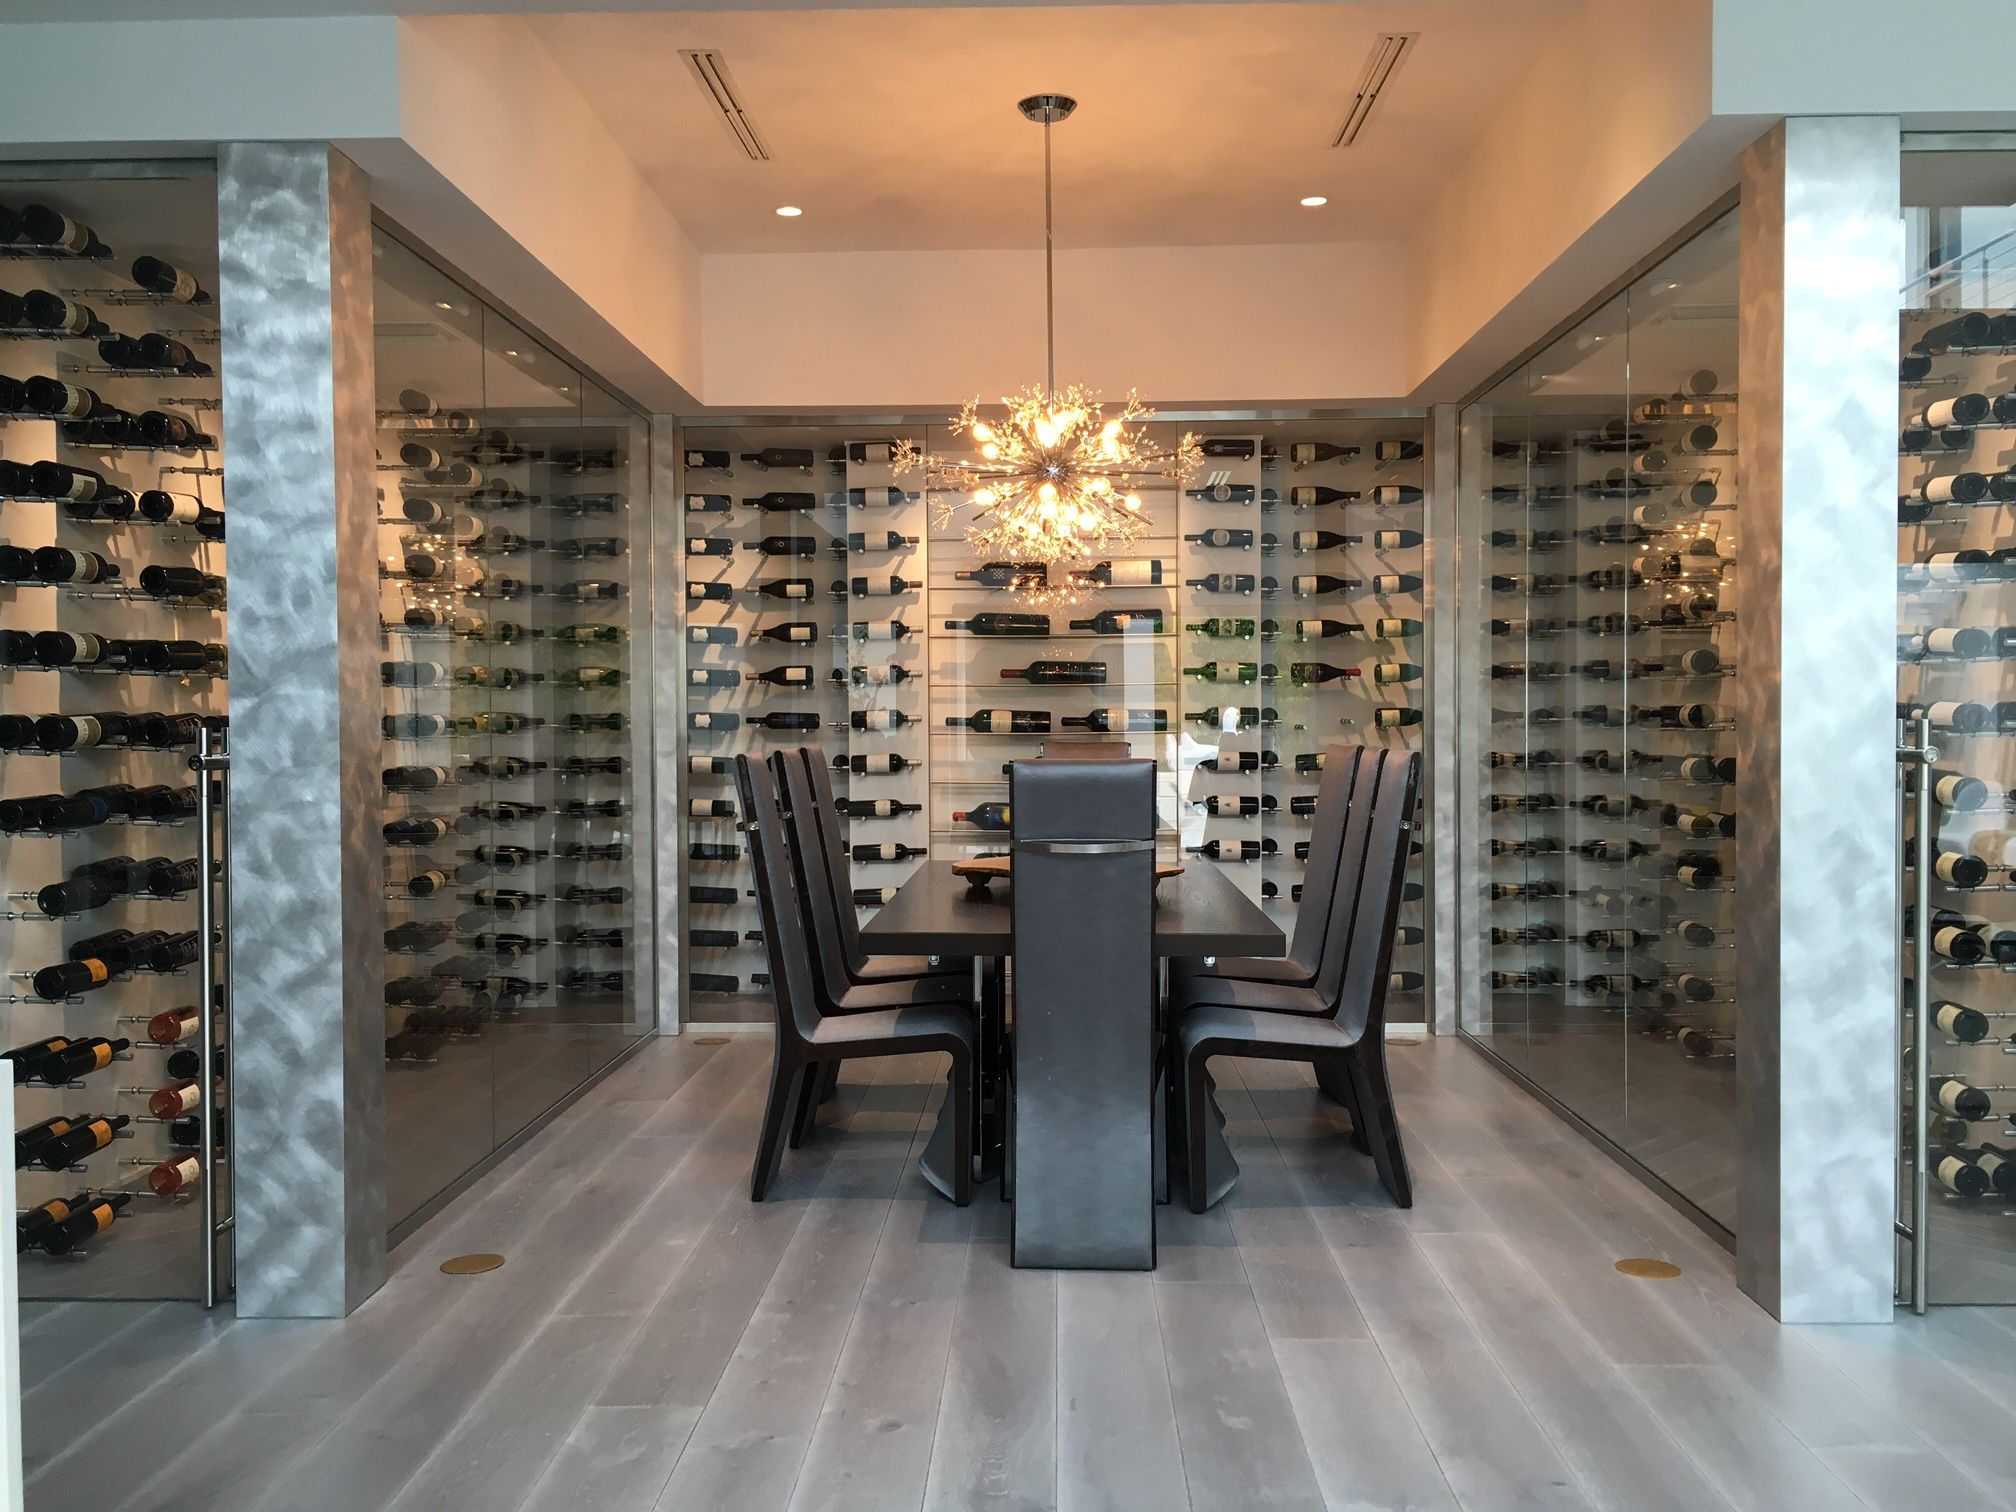 U Shaped Glass Wall Wine Cellar In Naples Florida Holds 932 Bottles Contemporary Racking Climate Con Contemporary Wine Cellar Wine Cellar Modern Wine Room